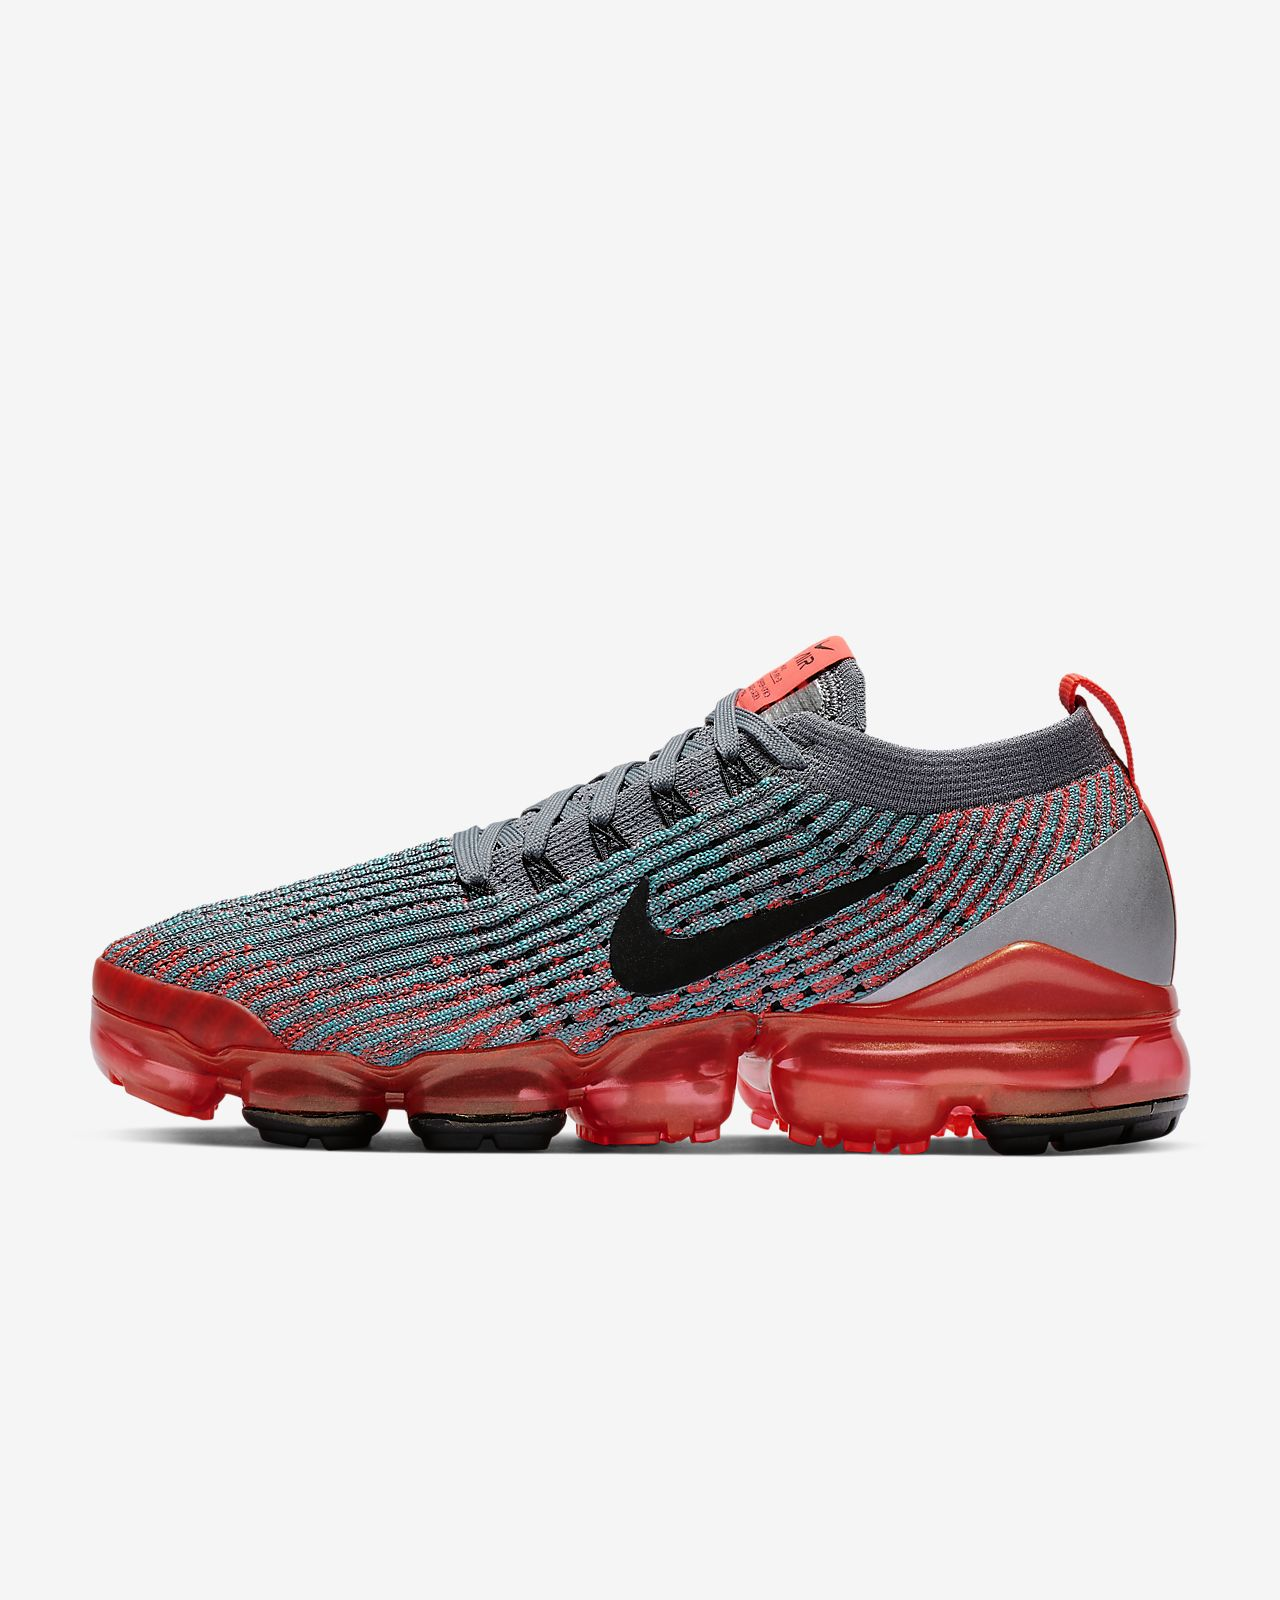 innovative design 9bf42 33c2e ... Nike Air VaporMax Flyknit 3 Women s Shoe